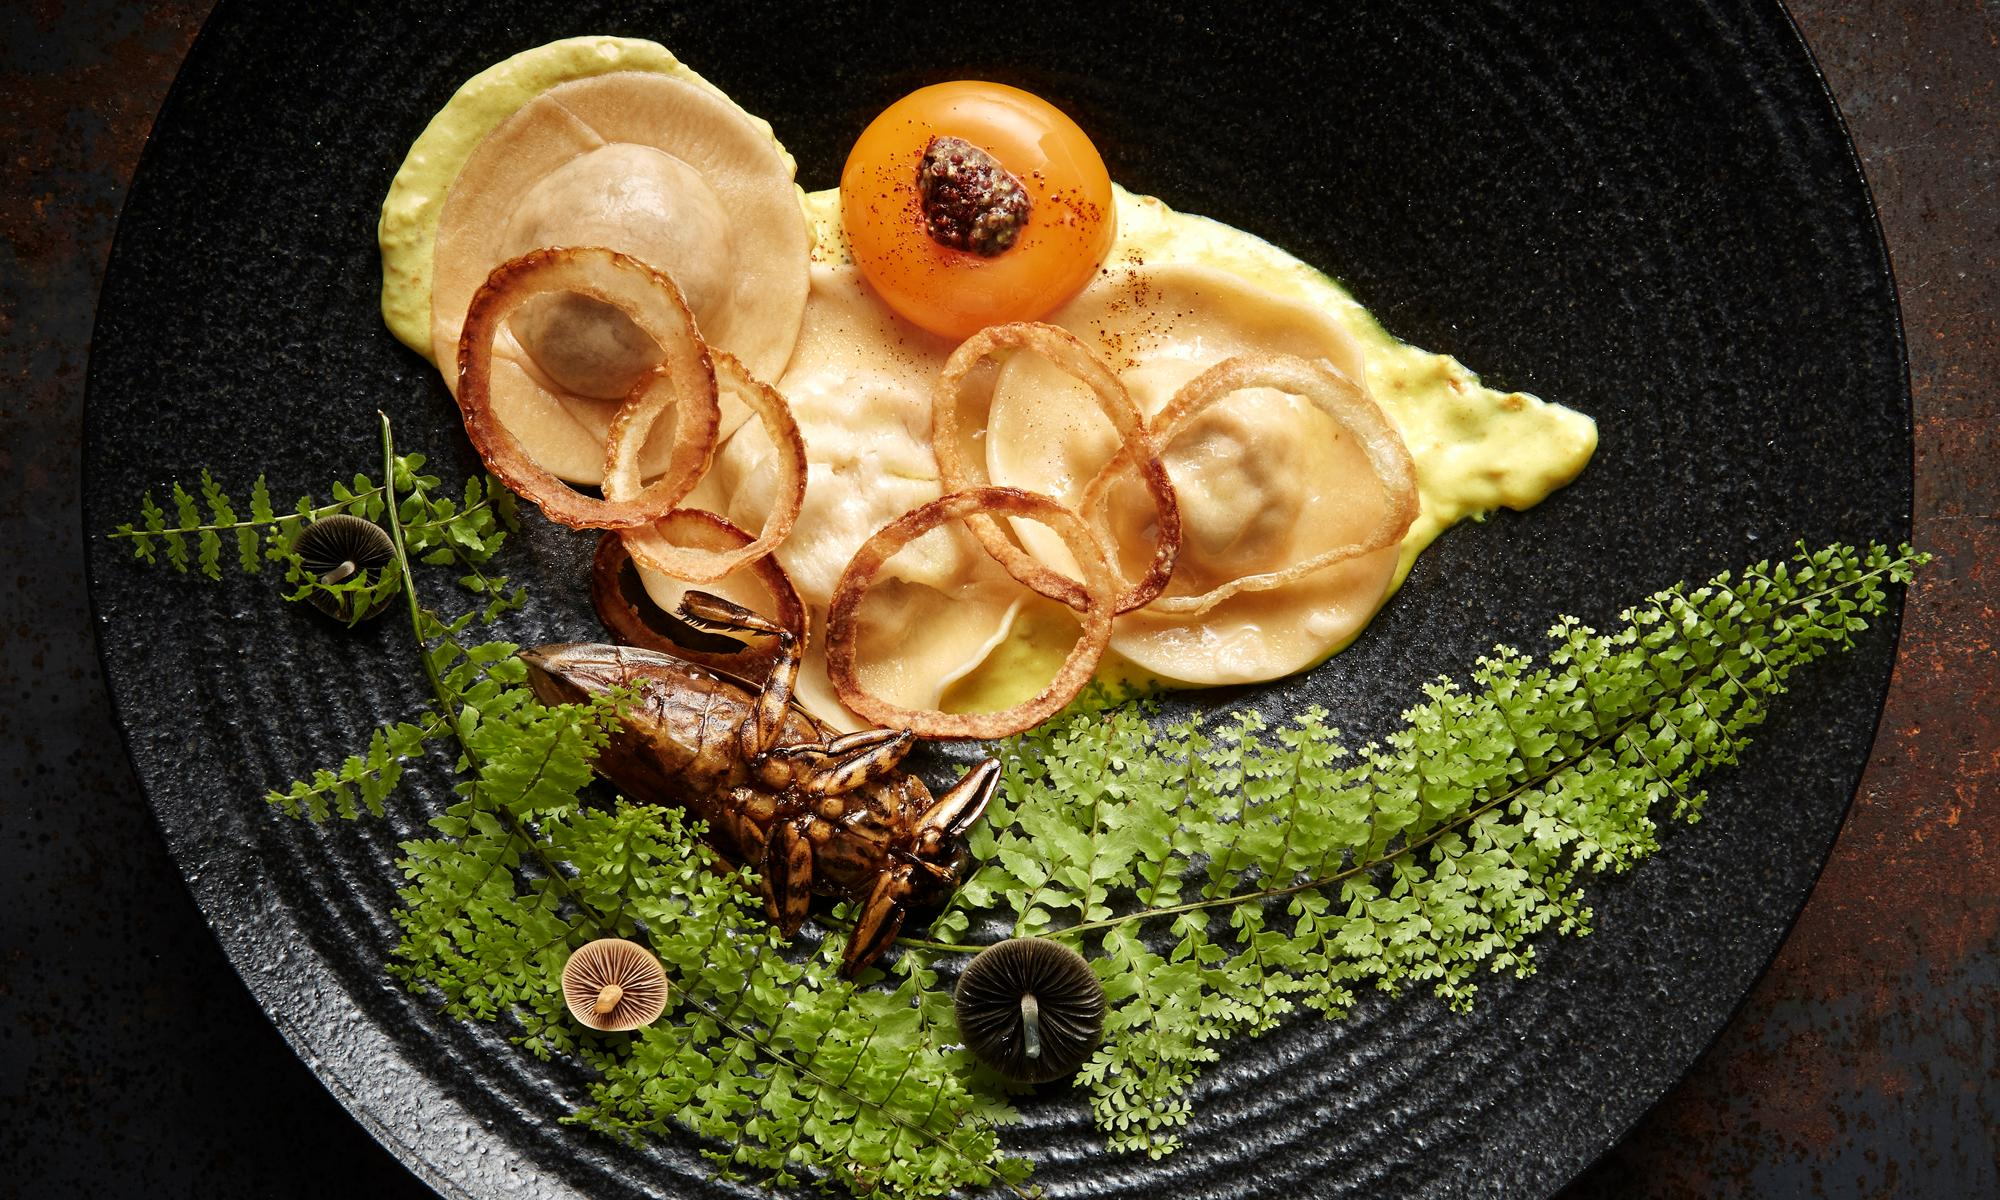 Feelers out for insect fine dining in Bangkok